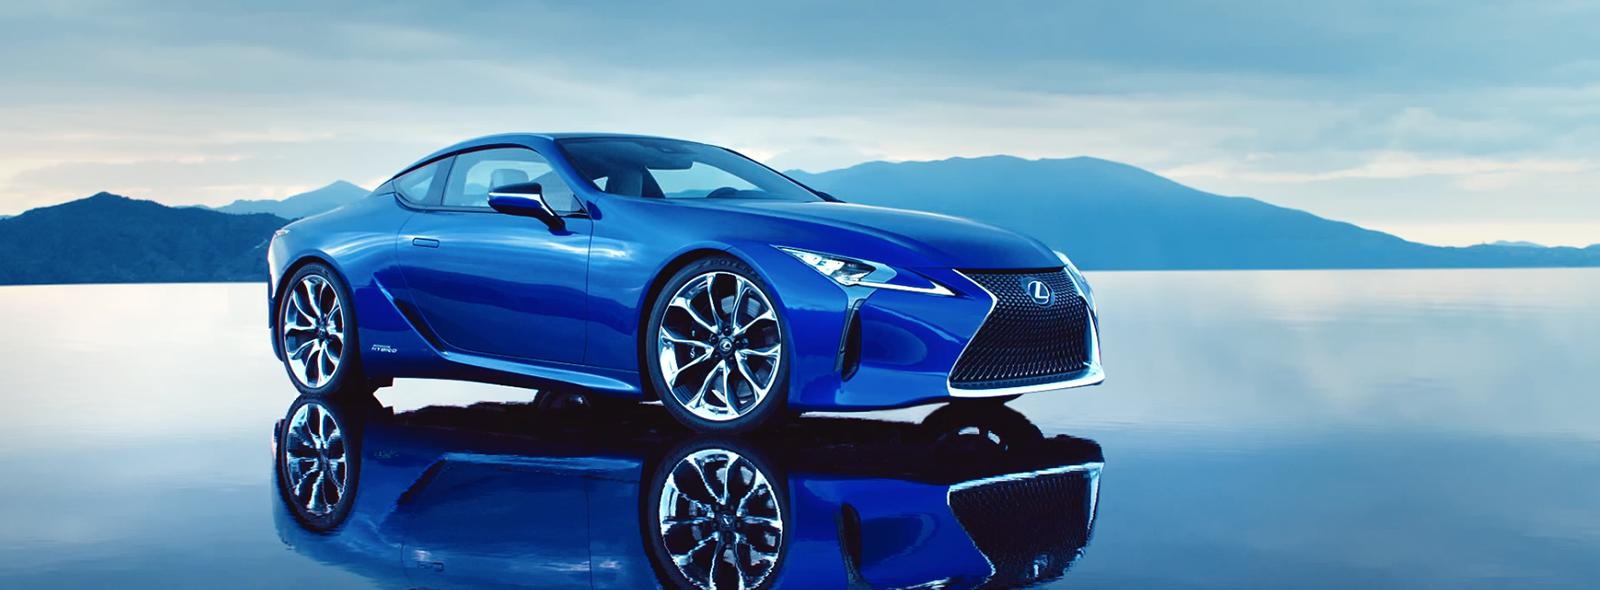 Blue Lexus LC 500h Video Cover